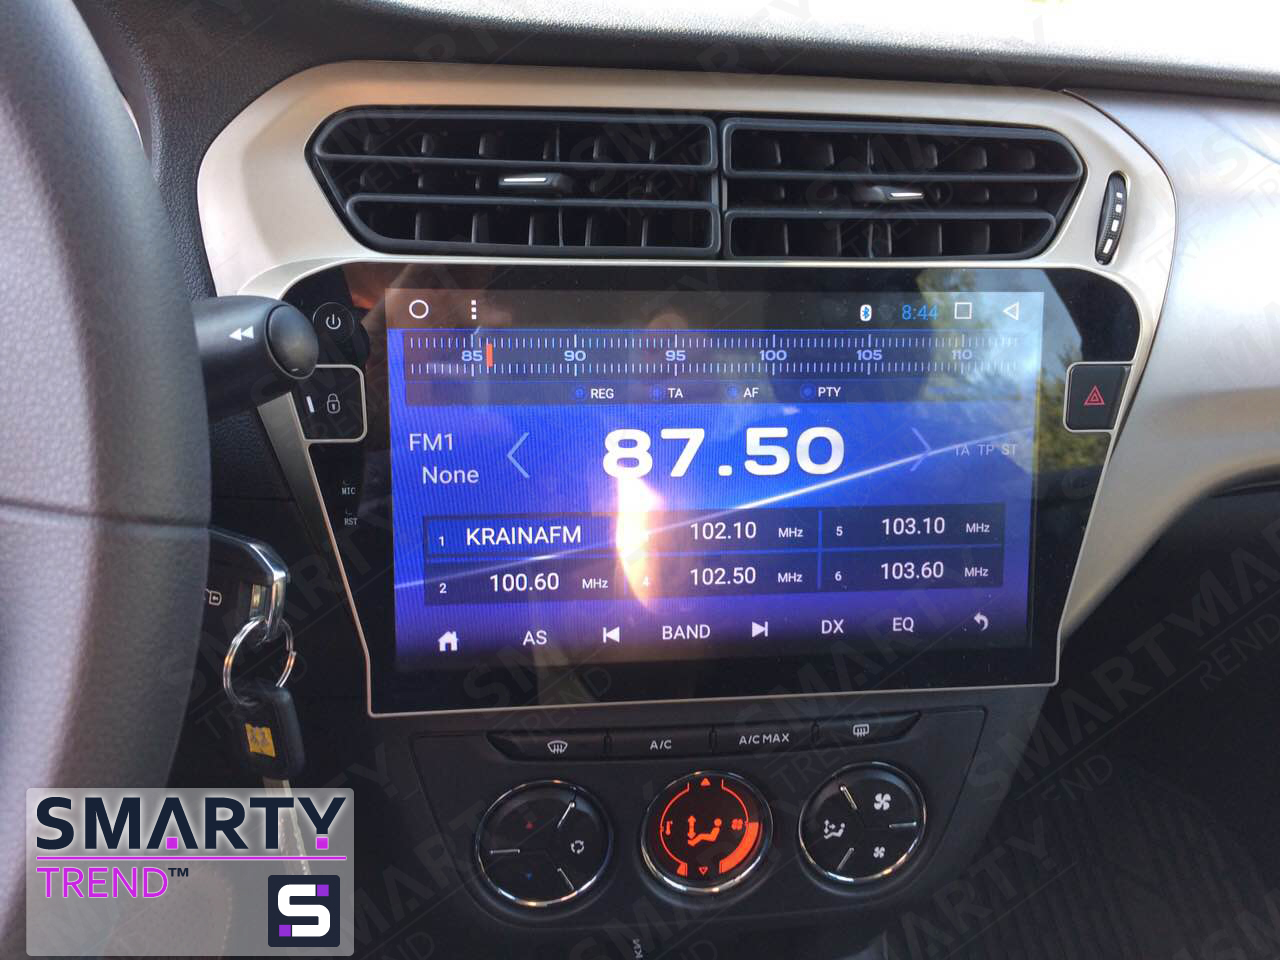 SMARTY Trend head unit for Citroen C-Elysee